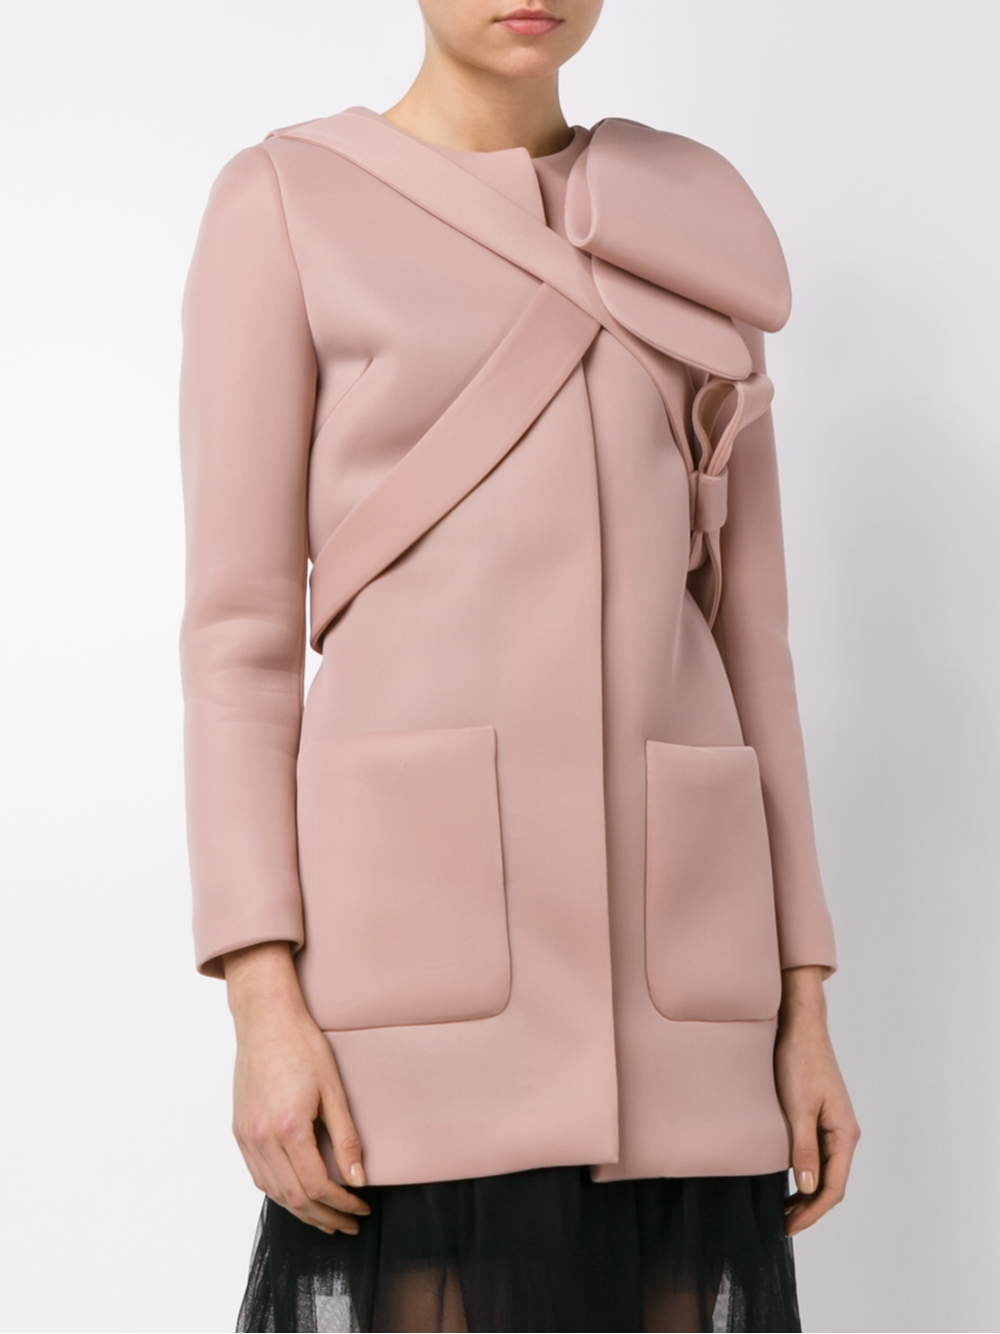 Simone rocha Neoprene Bow Coat in Pink | Lyst